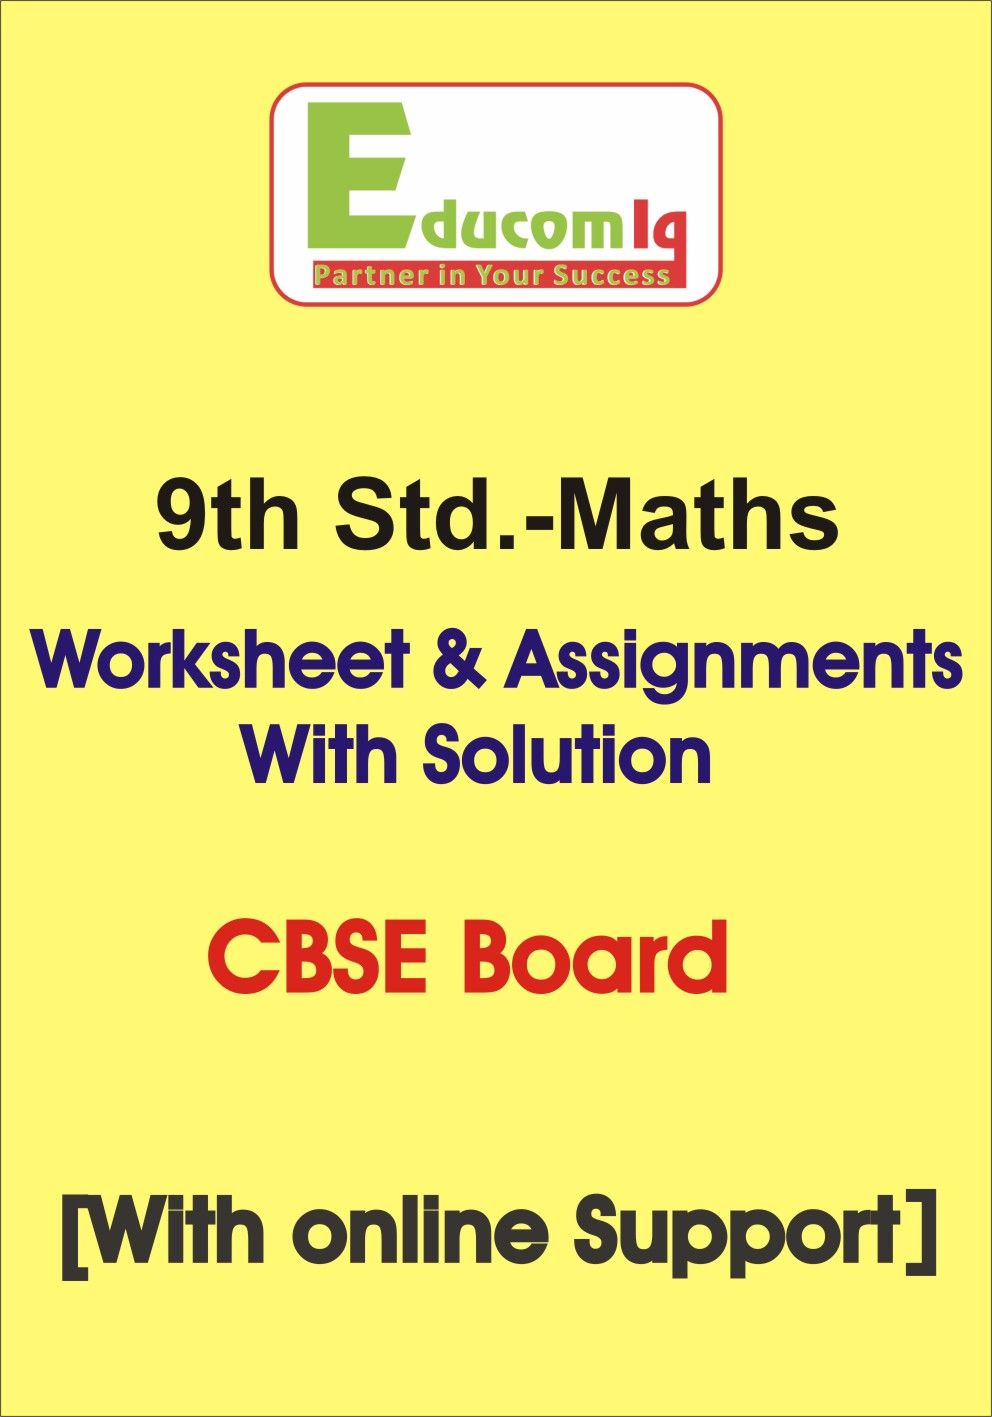 Worksheets Of Maths For Class Ixth Cbse Board In Booklet Form Math Quadratics Worksheets [ 1417 x 992 Pixel ]